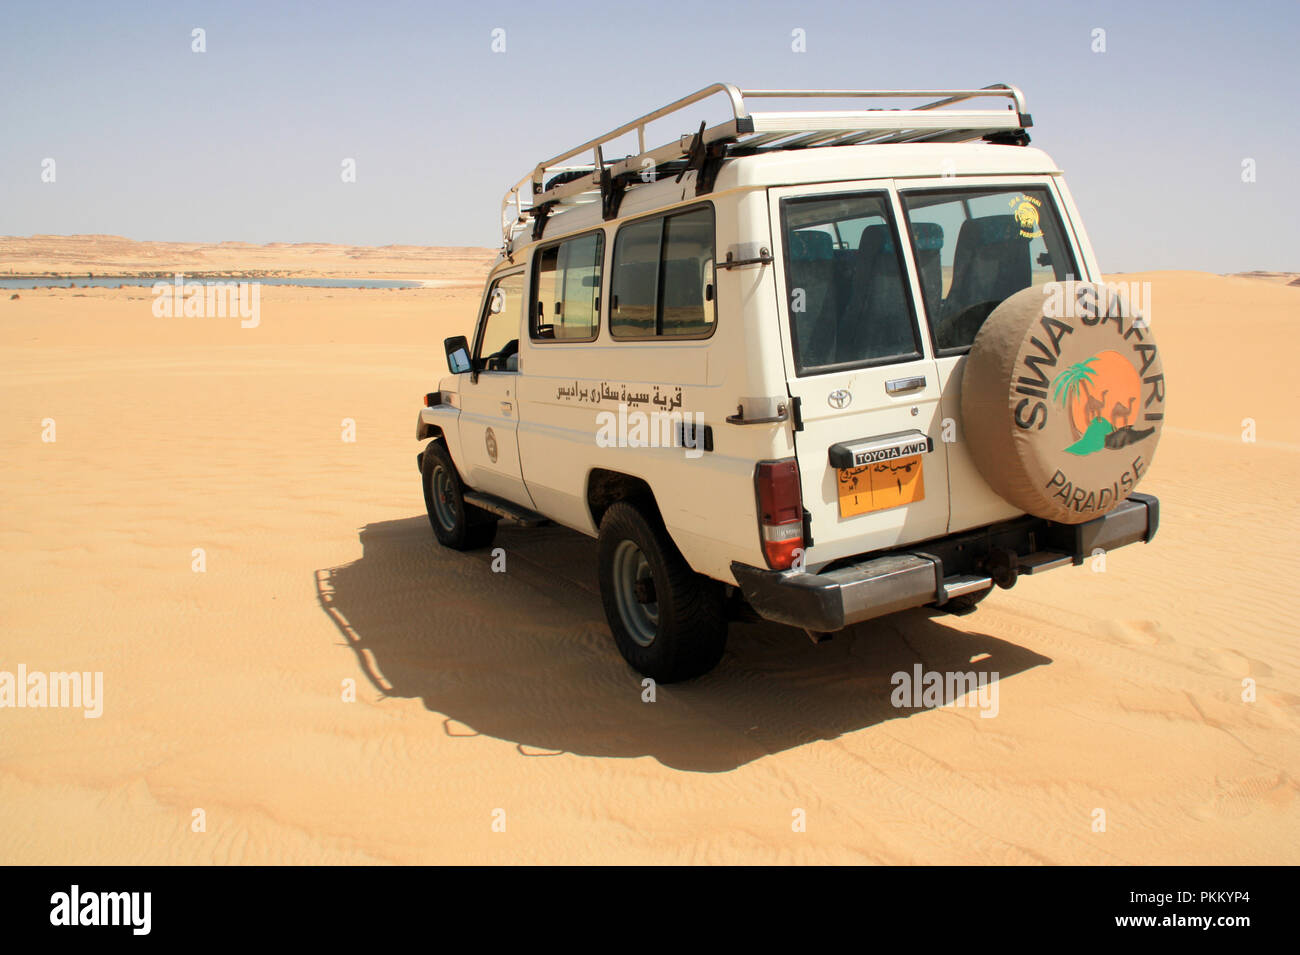 Off-road vehicle heading towards a oasis near the Libyan boarder - Stock Image